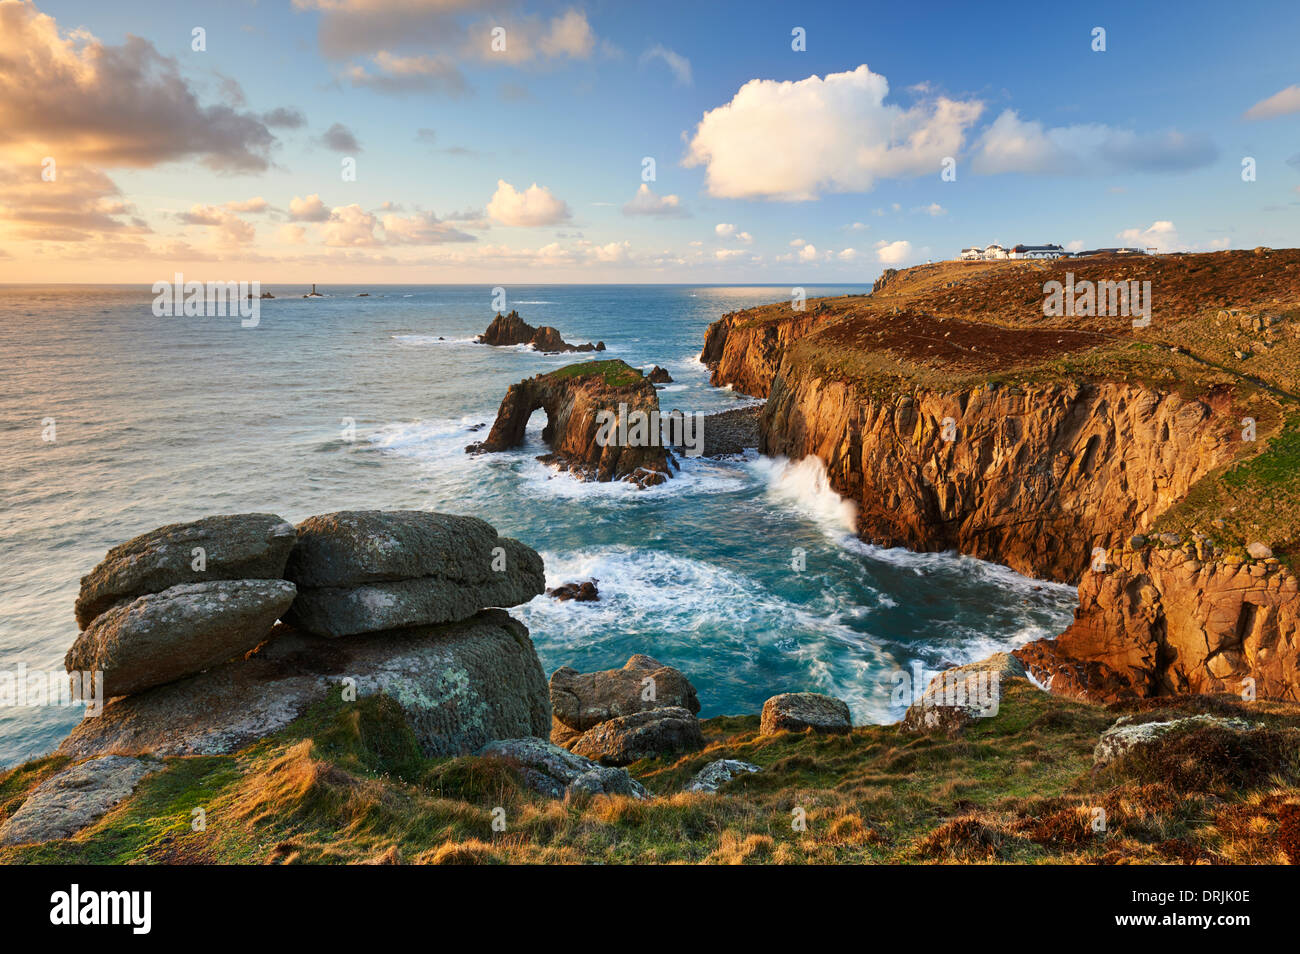 Evening light across the Land's End Peninsula at Land's End, Cornwall - Stock Image